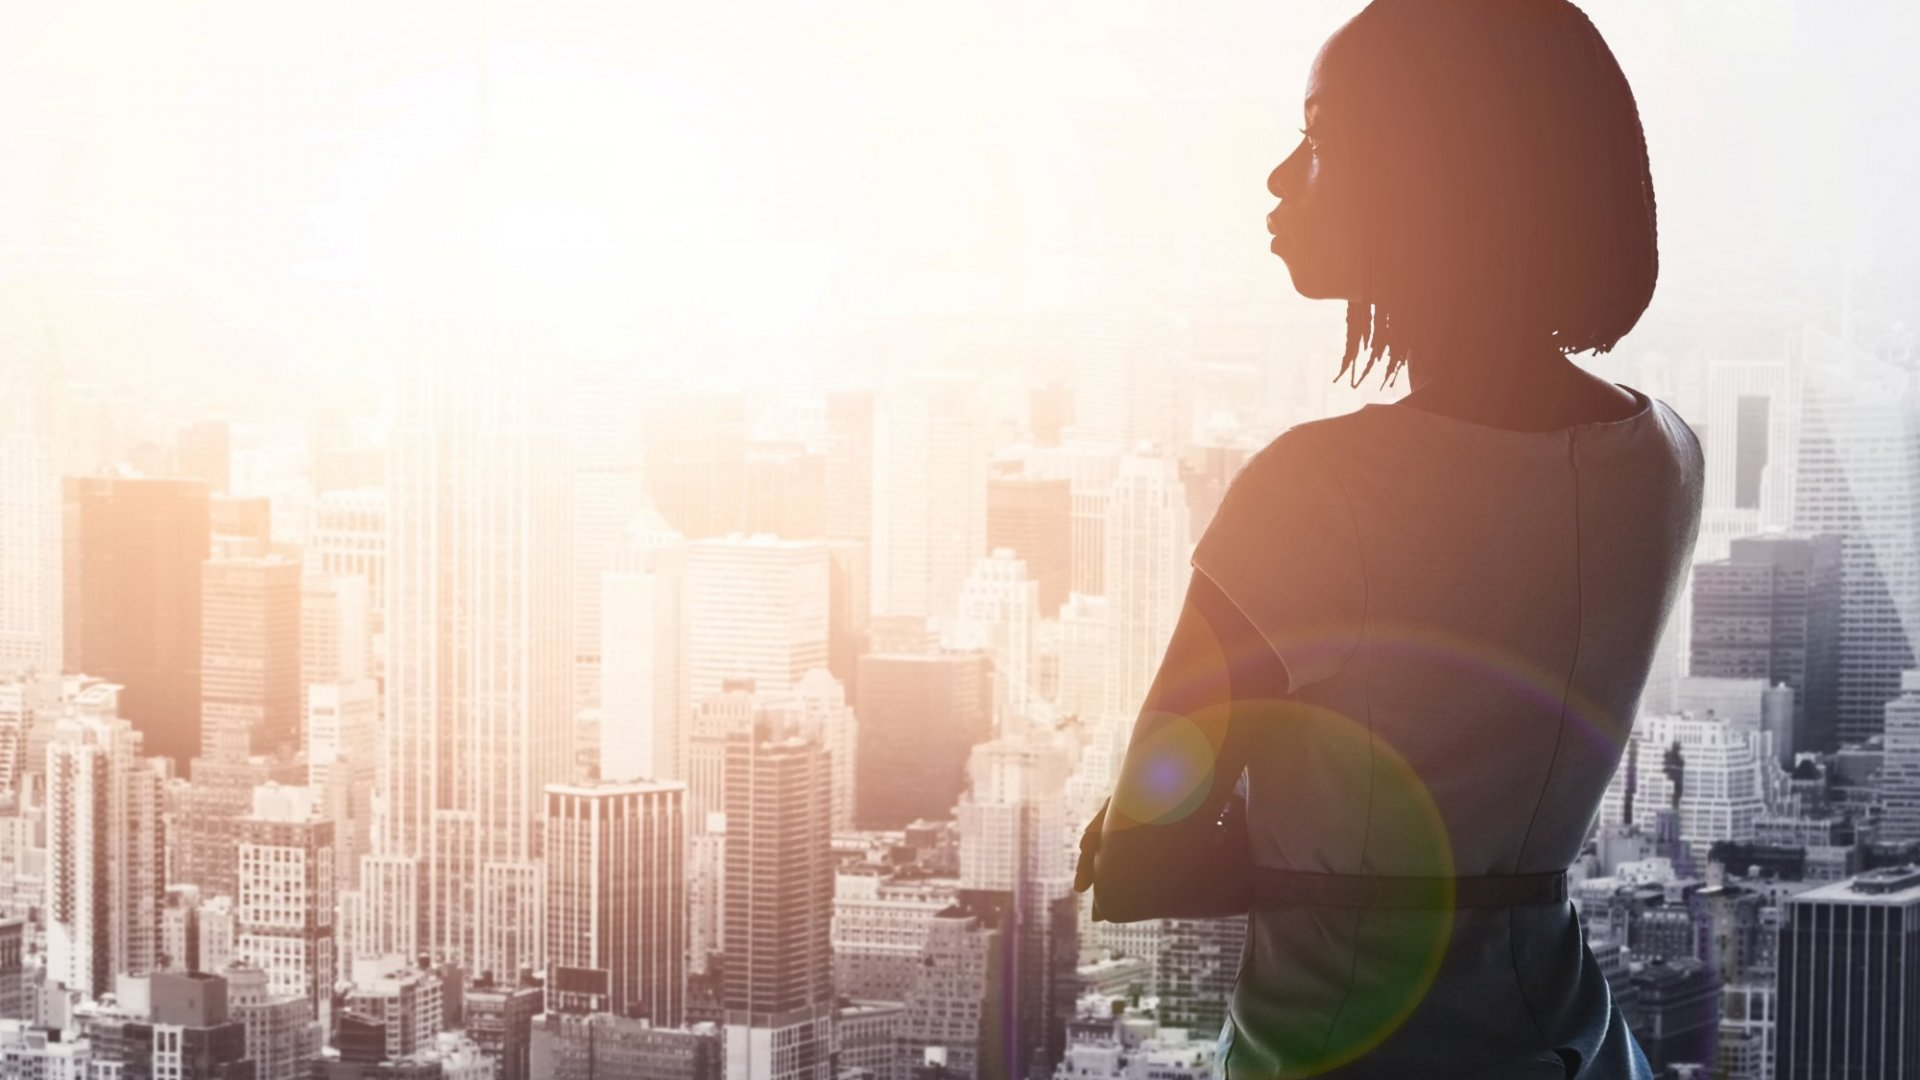 Your Company Will Perform Like a Boss If You Make a Woman the Boss